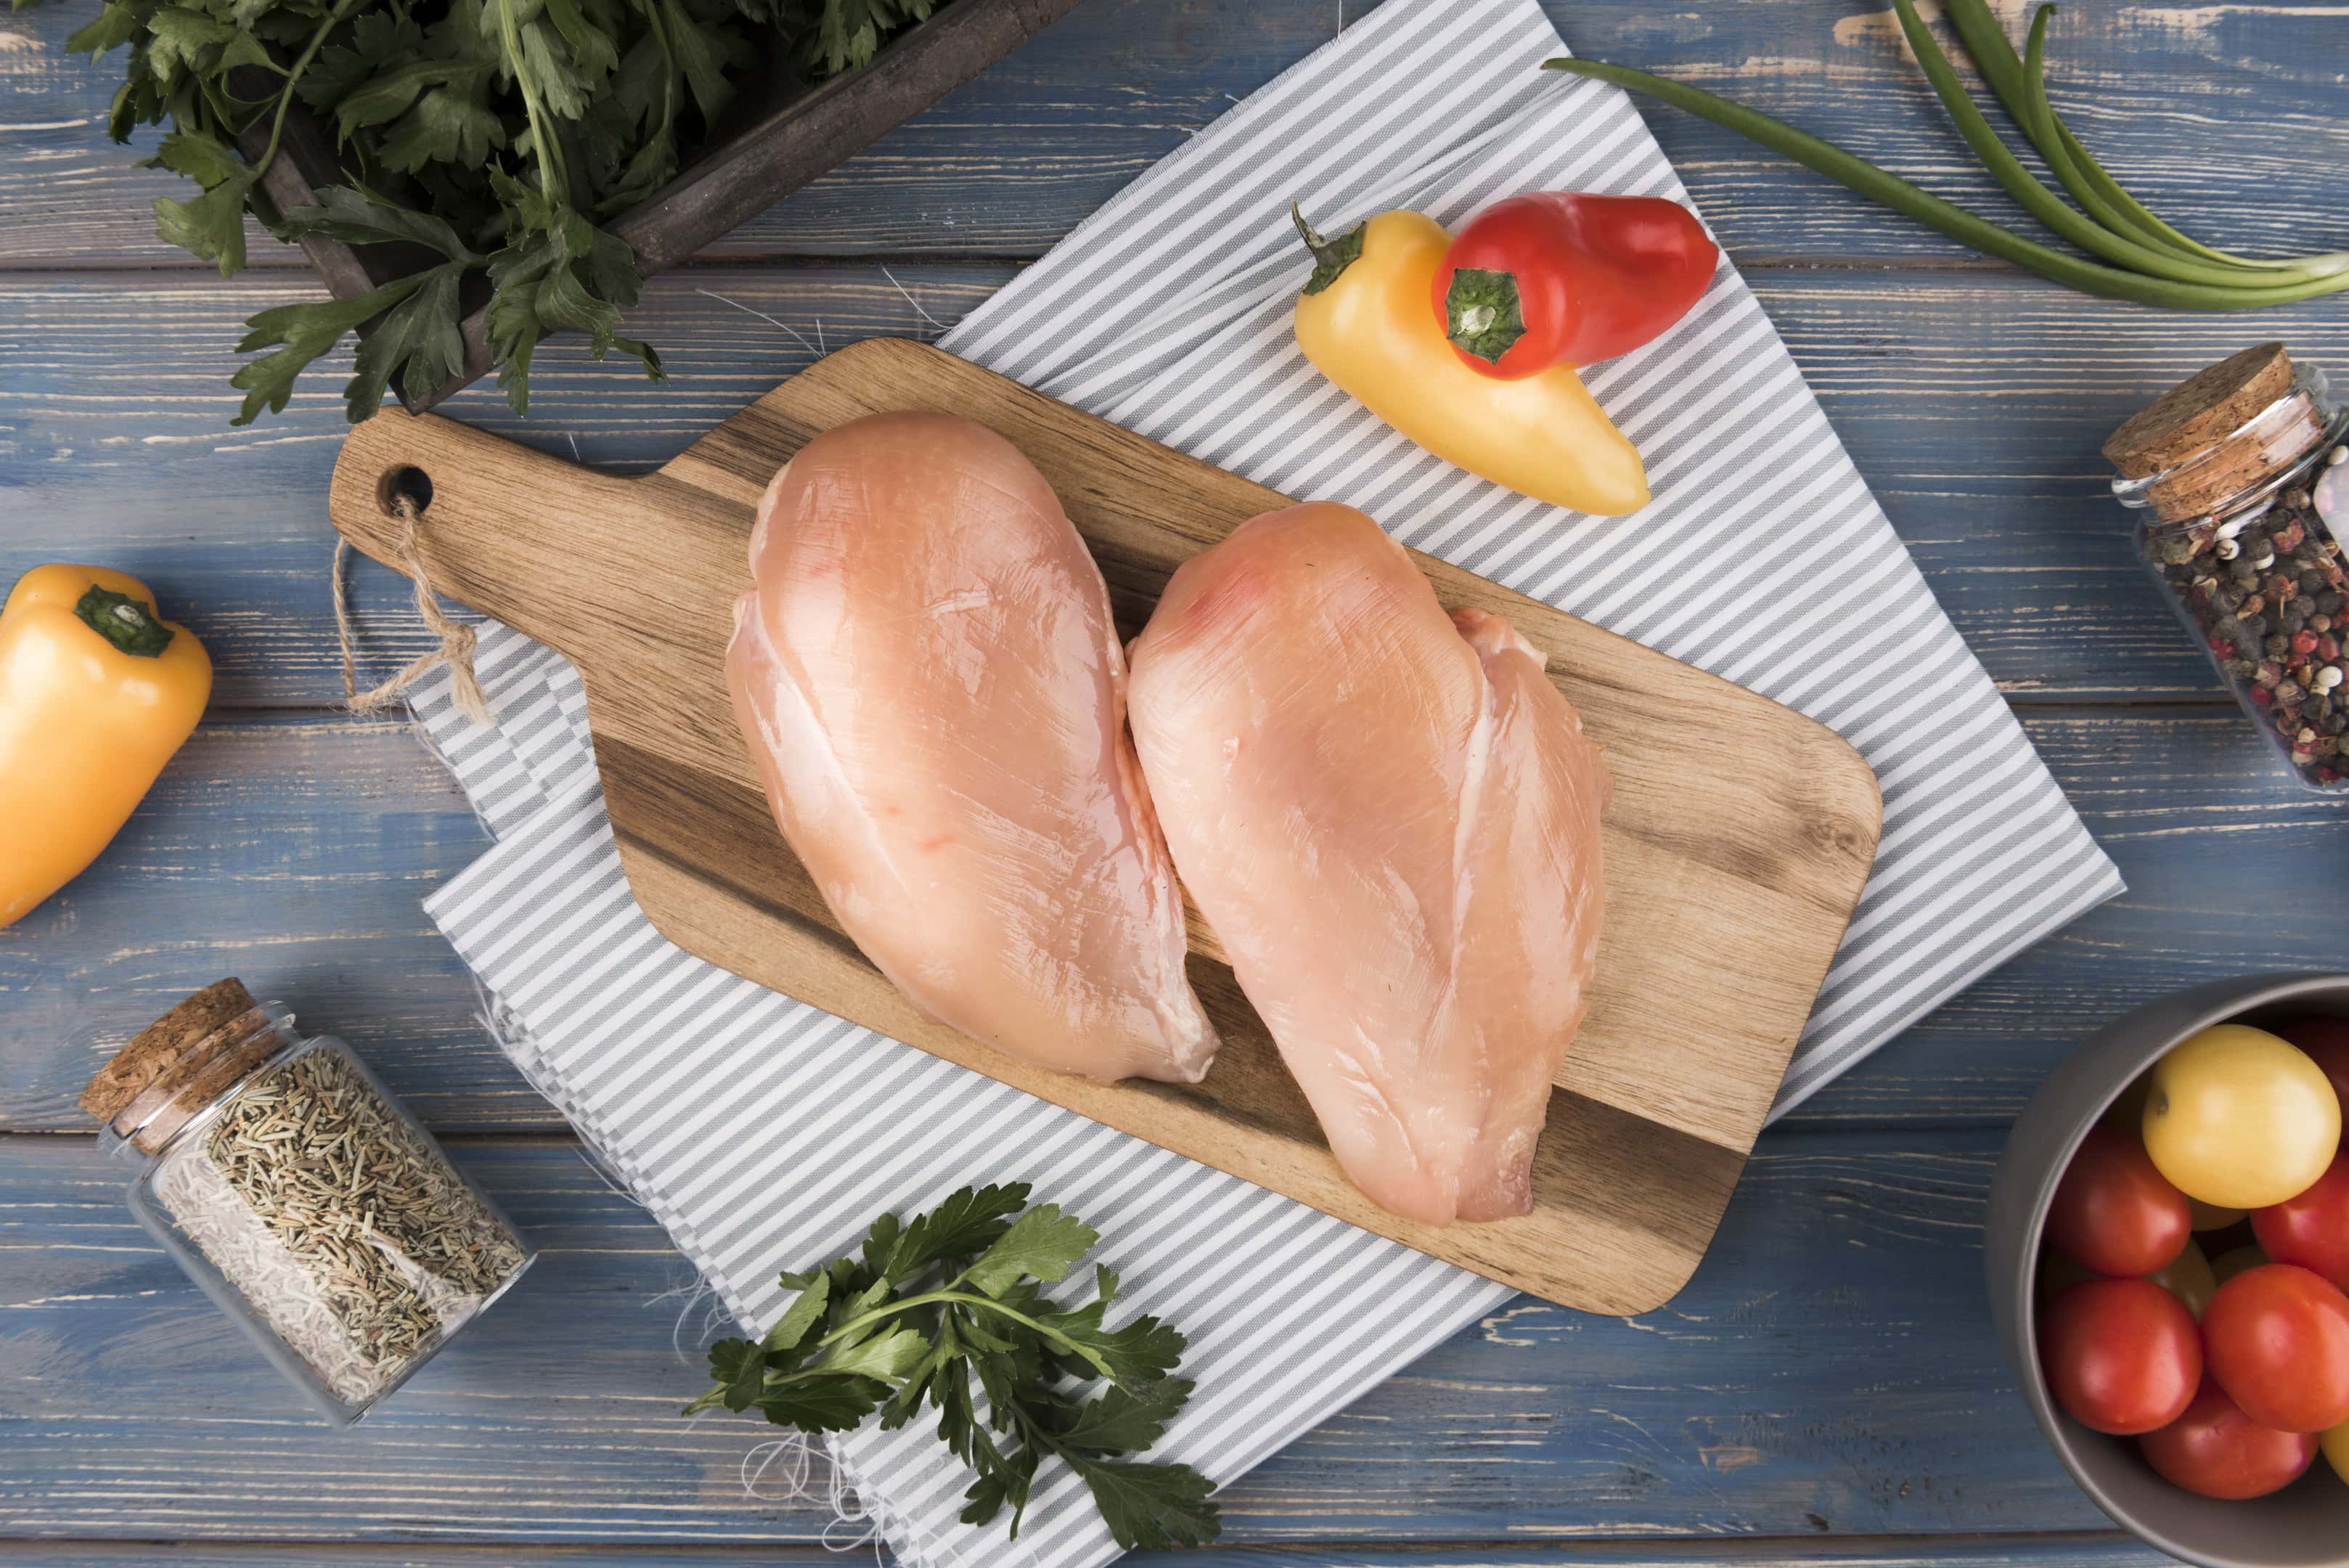 Chicken breasts on wooden board with ingredients